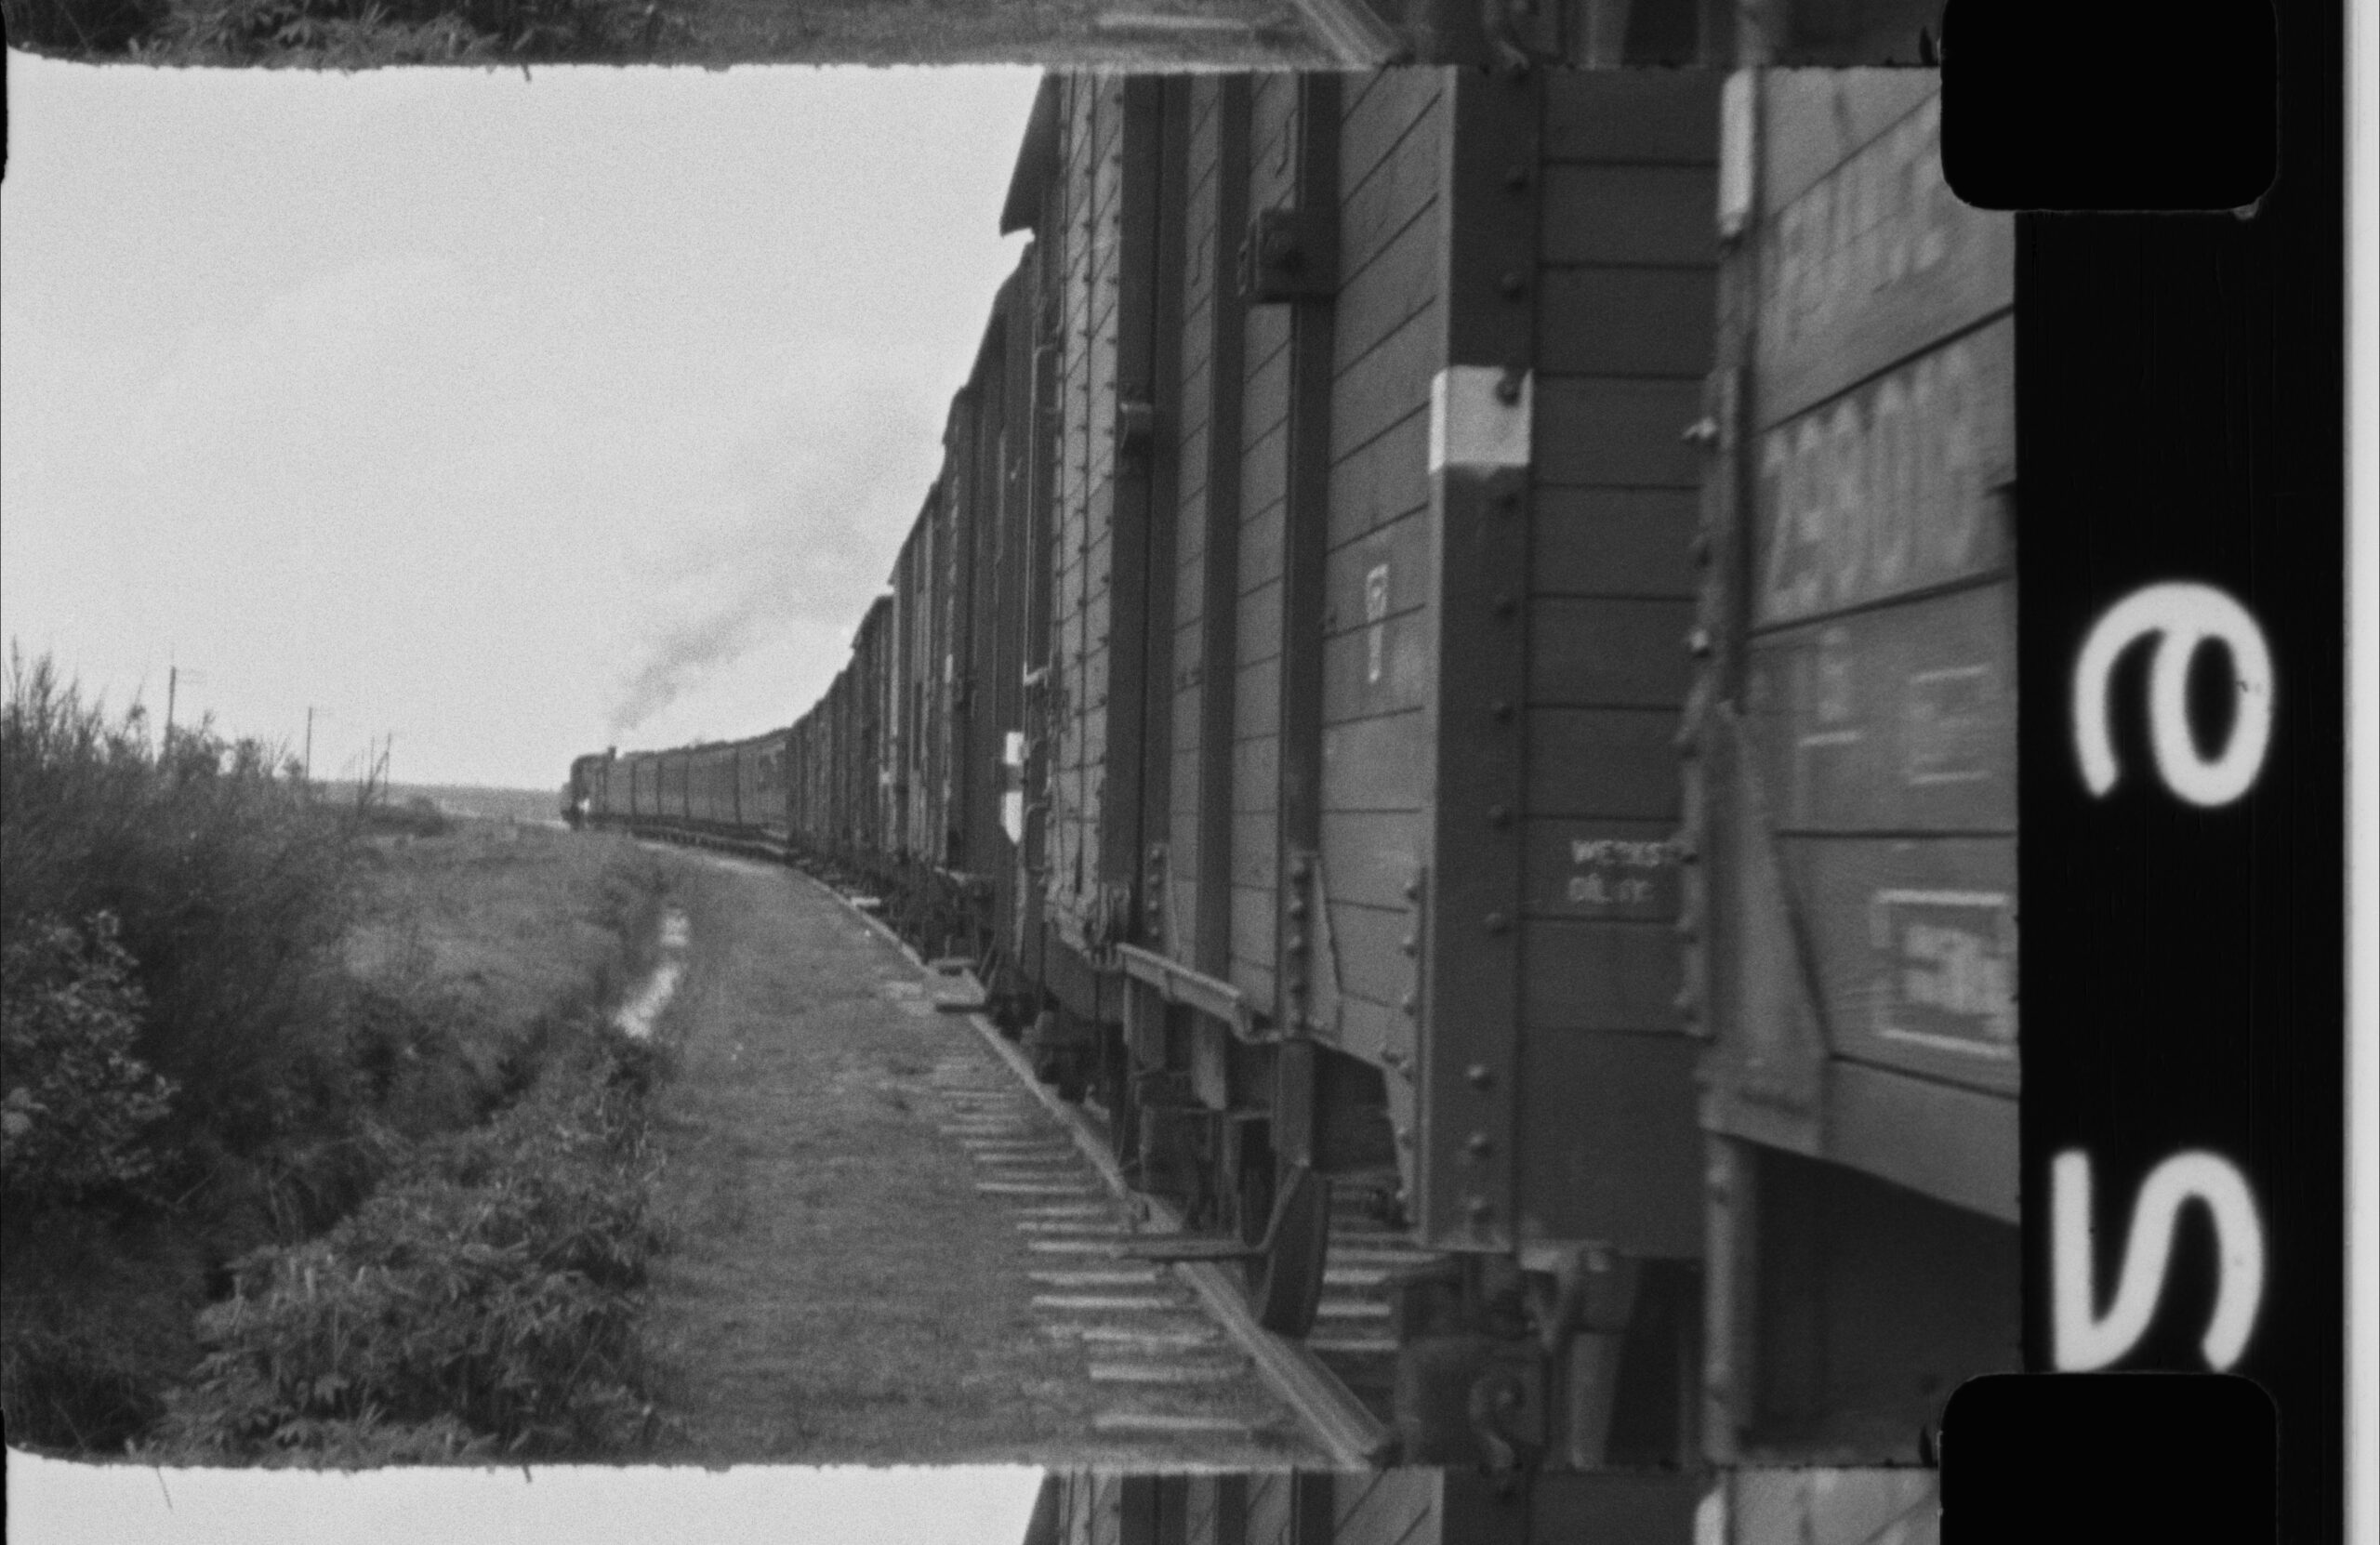 This black and white photo shows a train